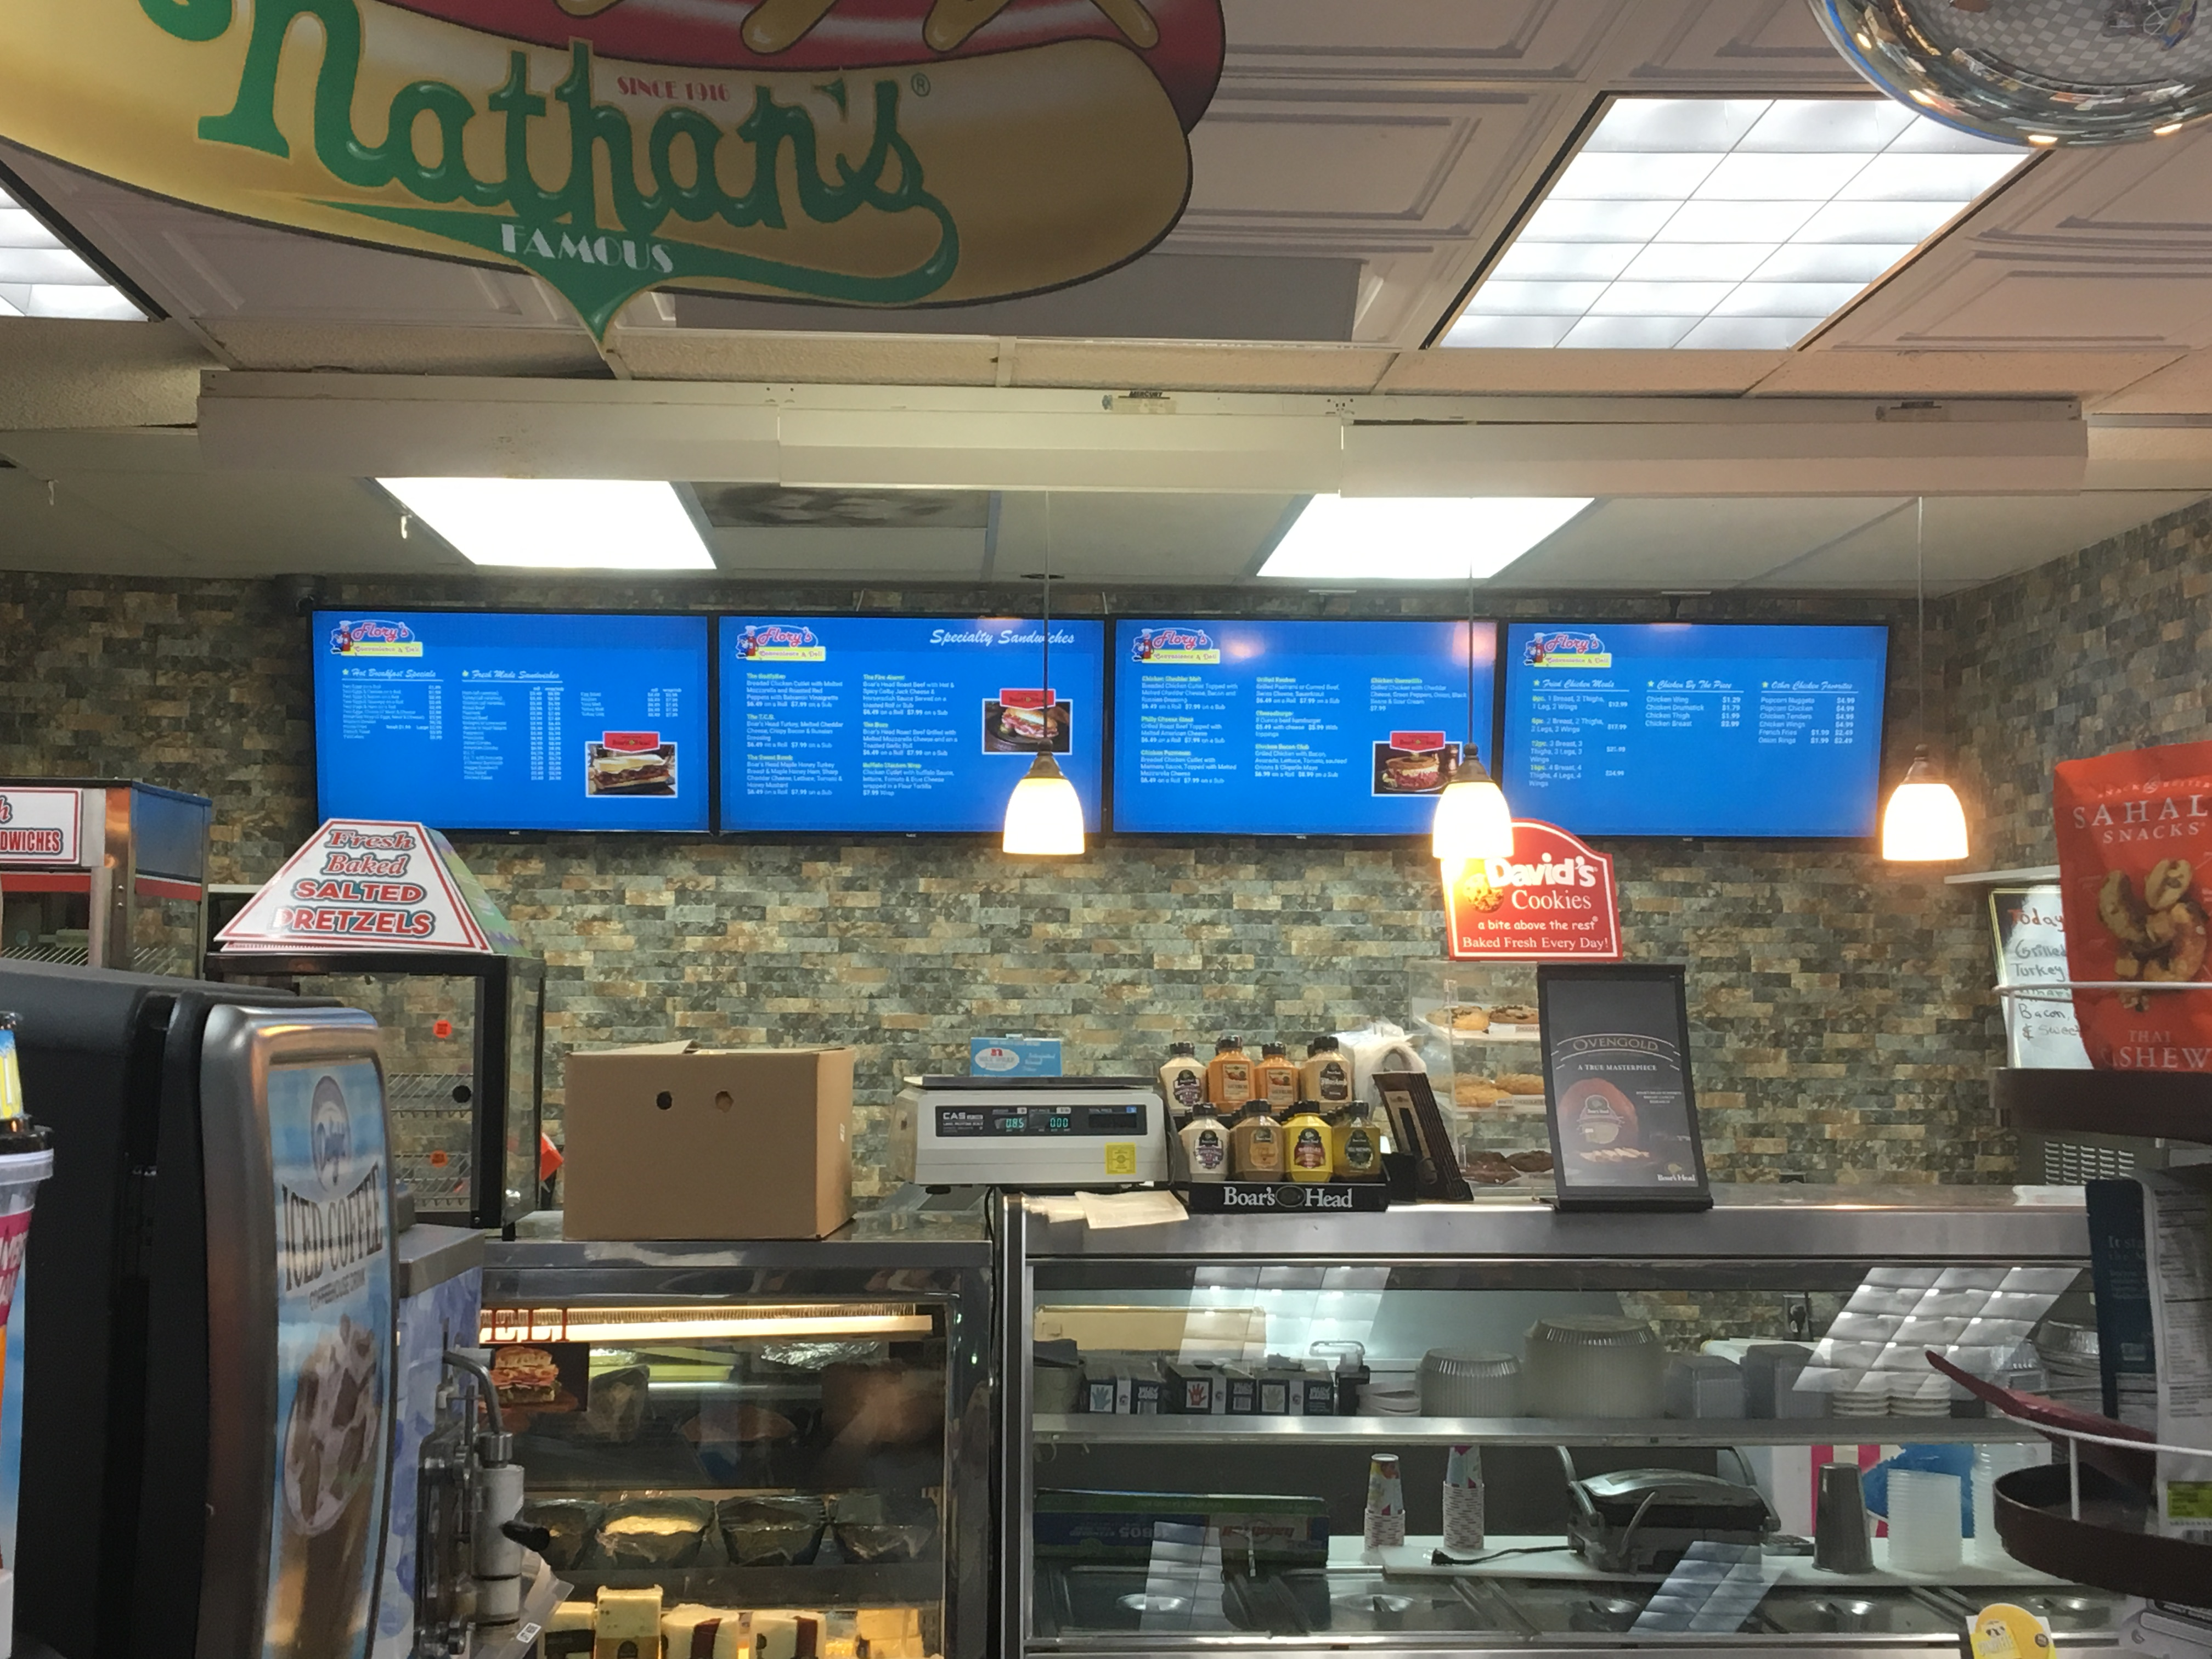 5 WAYS TO INCREASE YOUR SALES LIFT USING DIGITAL MENU BOARDS